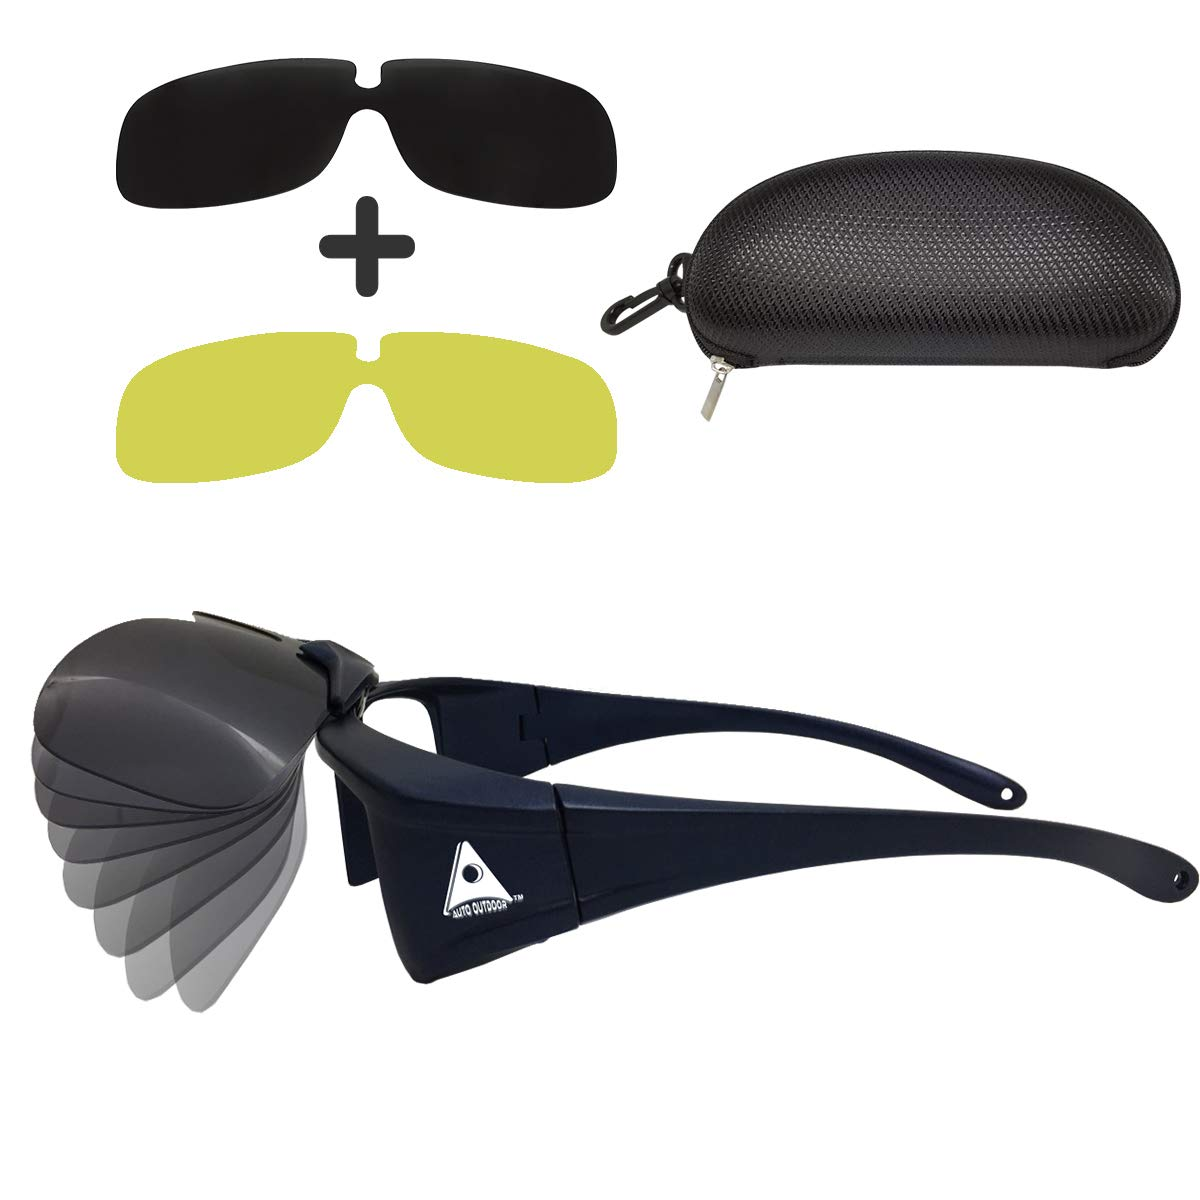 Auto Outdoor Polarized Driving Glasses, Multi-functional Sunglasses for Day and Night with Switchable Night Vision Lenses, 100% of UV400 protection, Fit-over Eyewear for Man and Women by Auto Outdoor (Image #1)